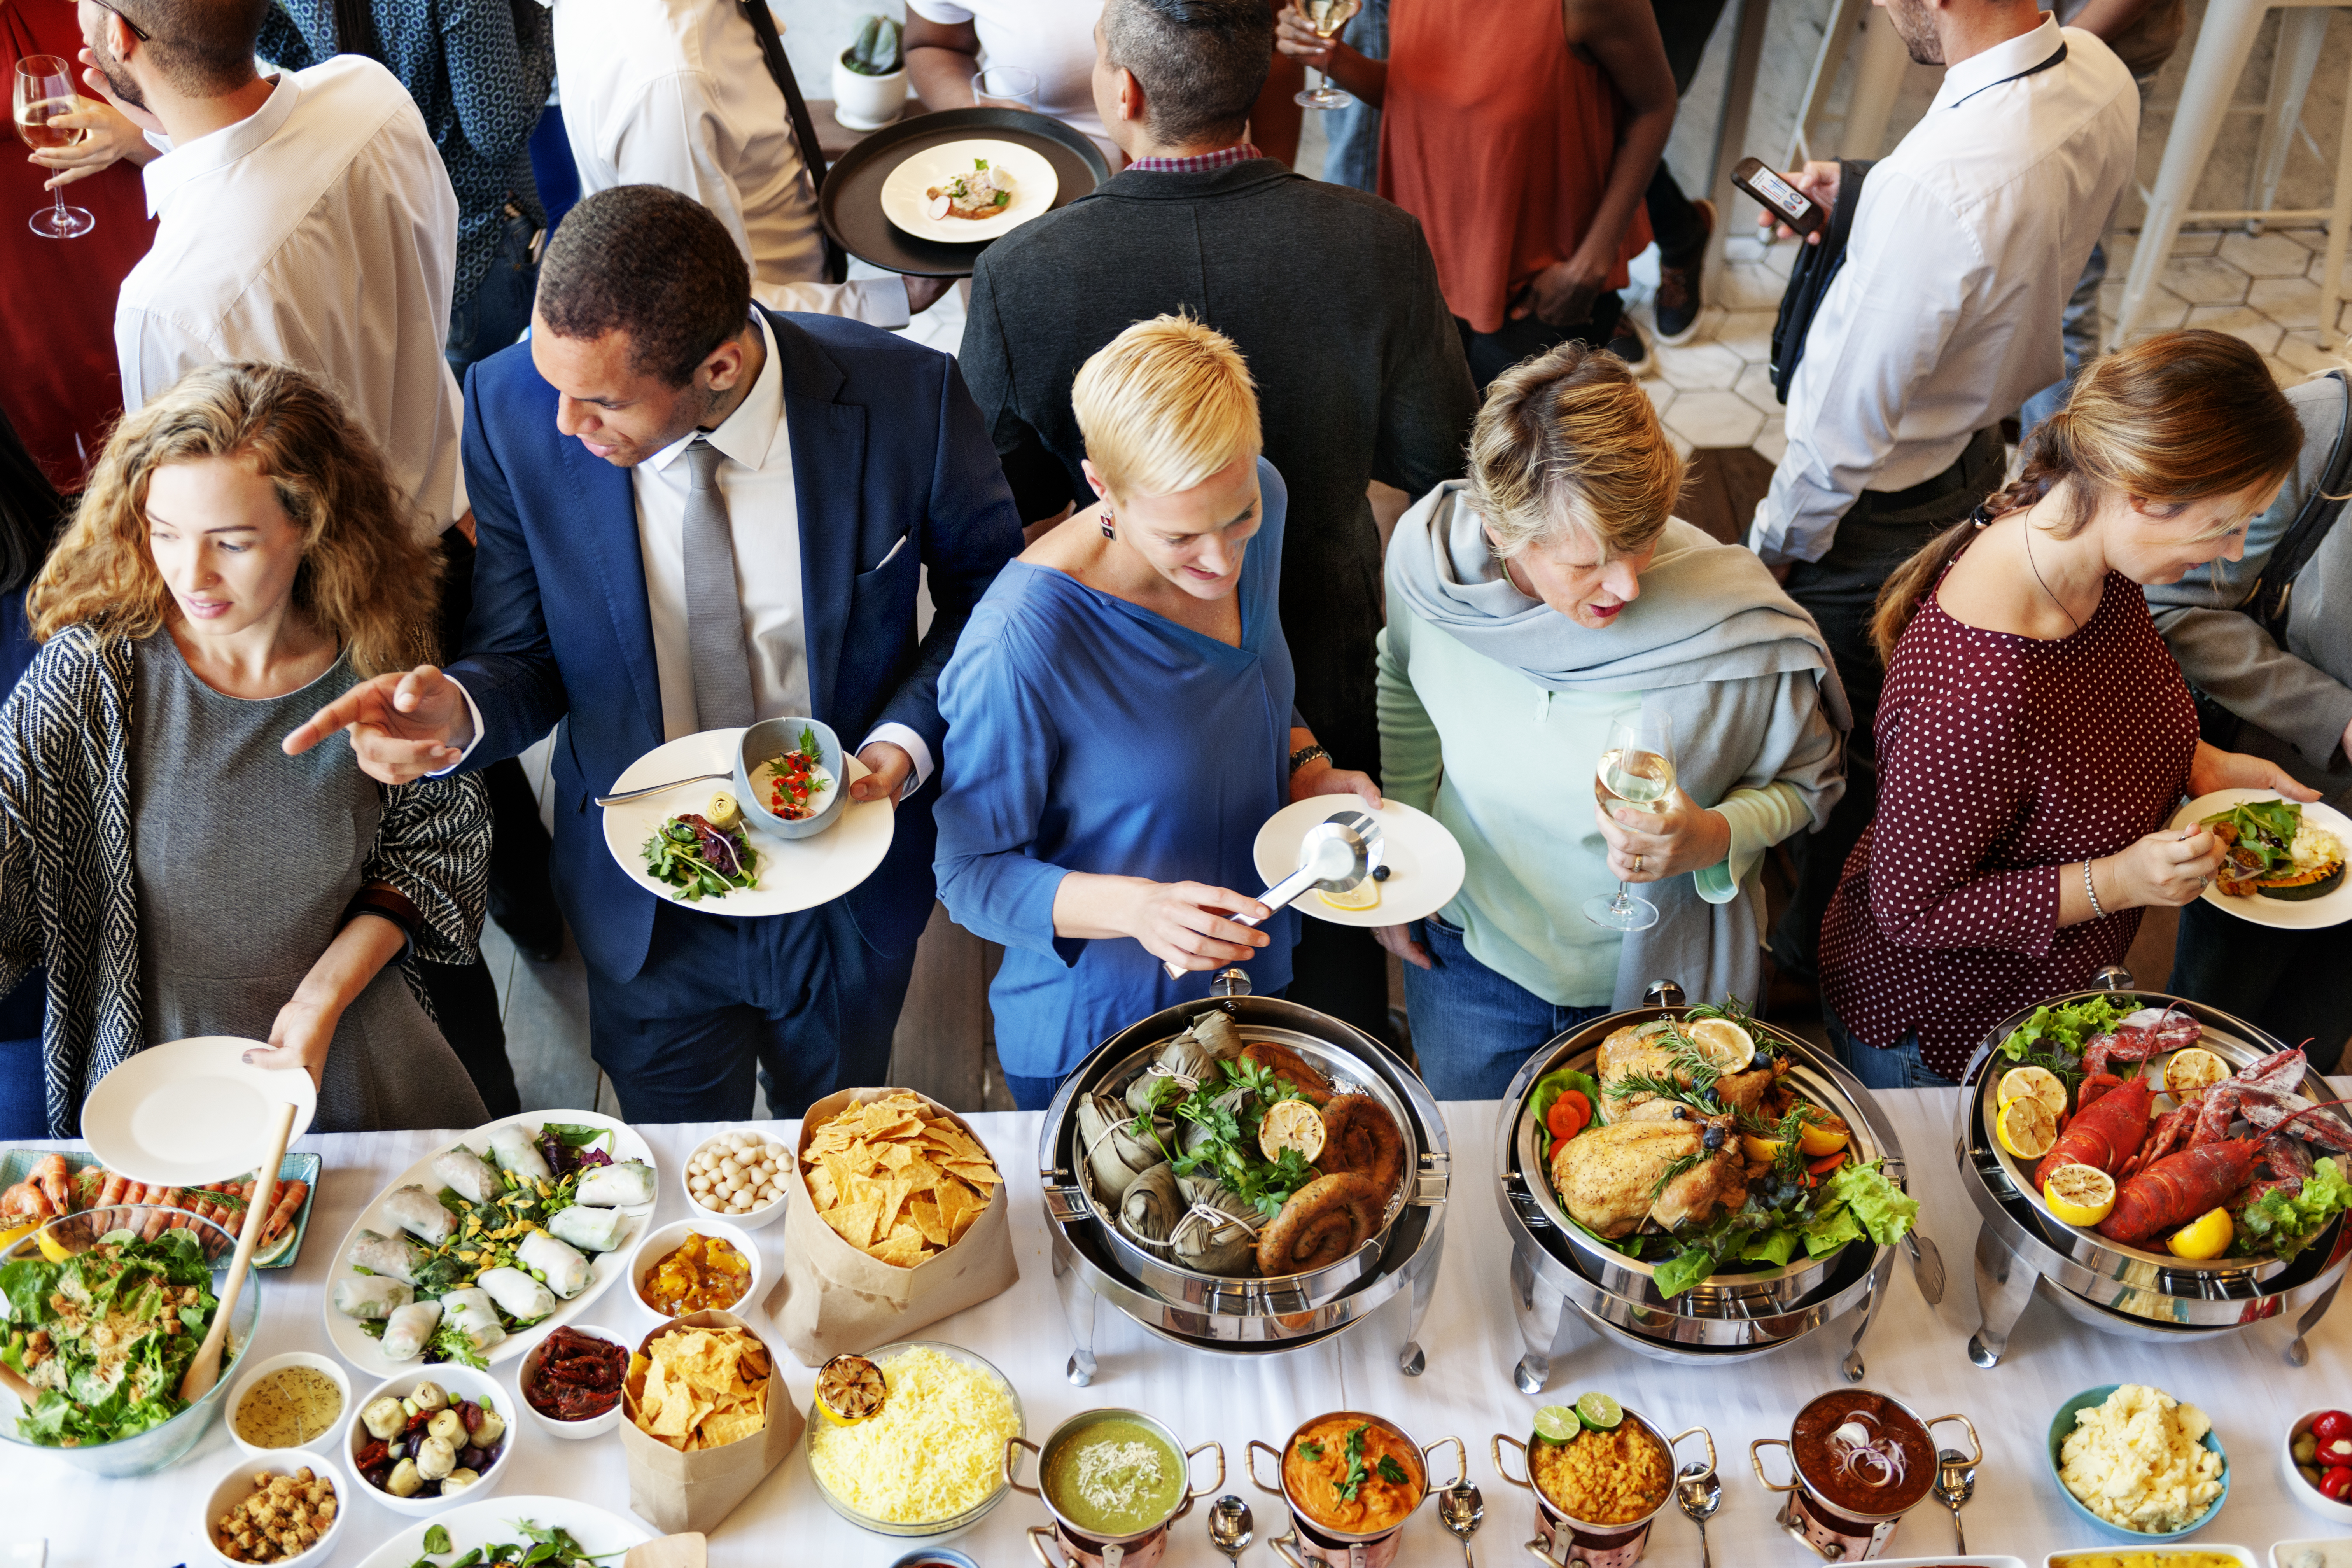 Buffet Catering Cafe Cuisine Culinary Meal Unity Concept>